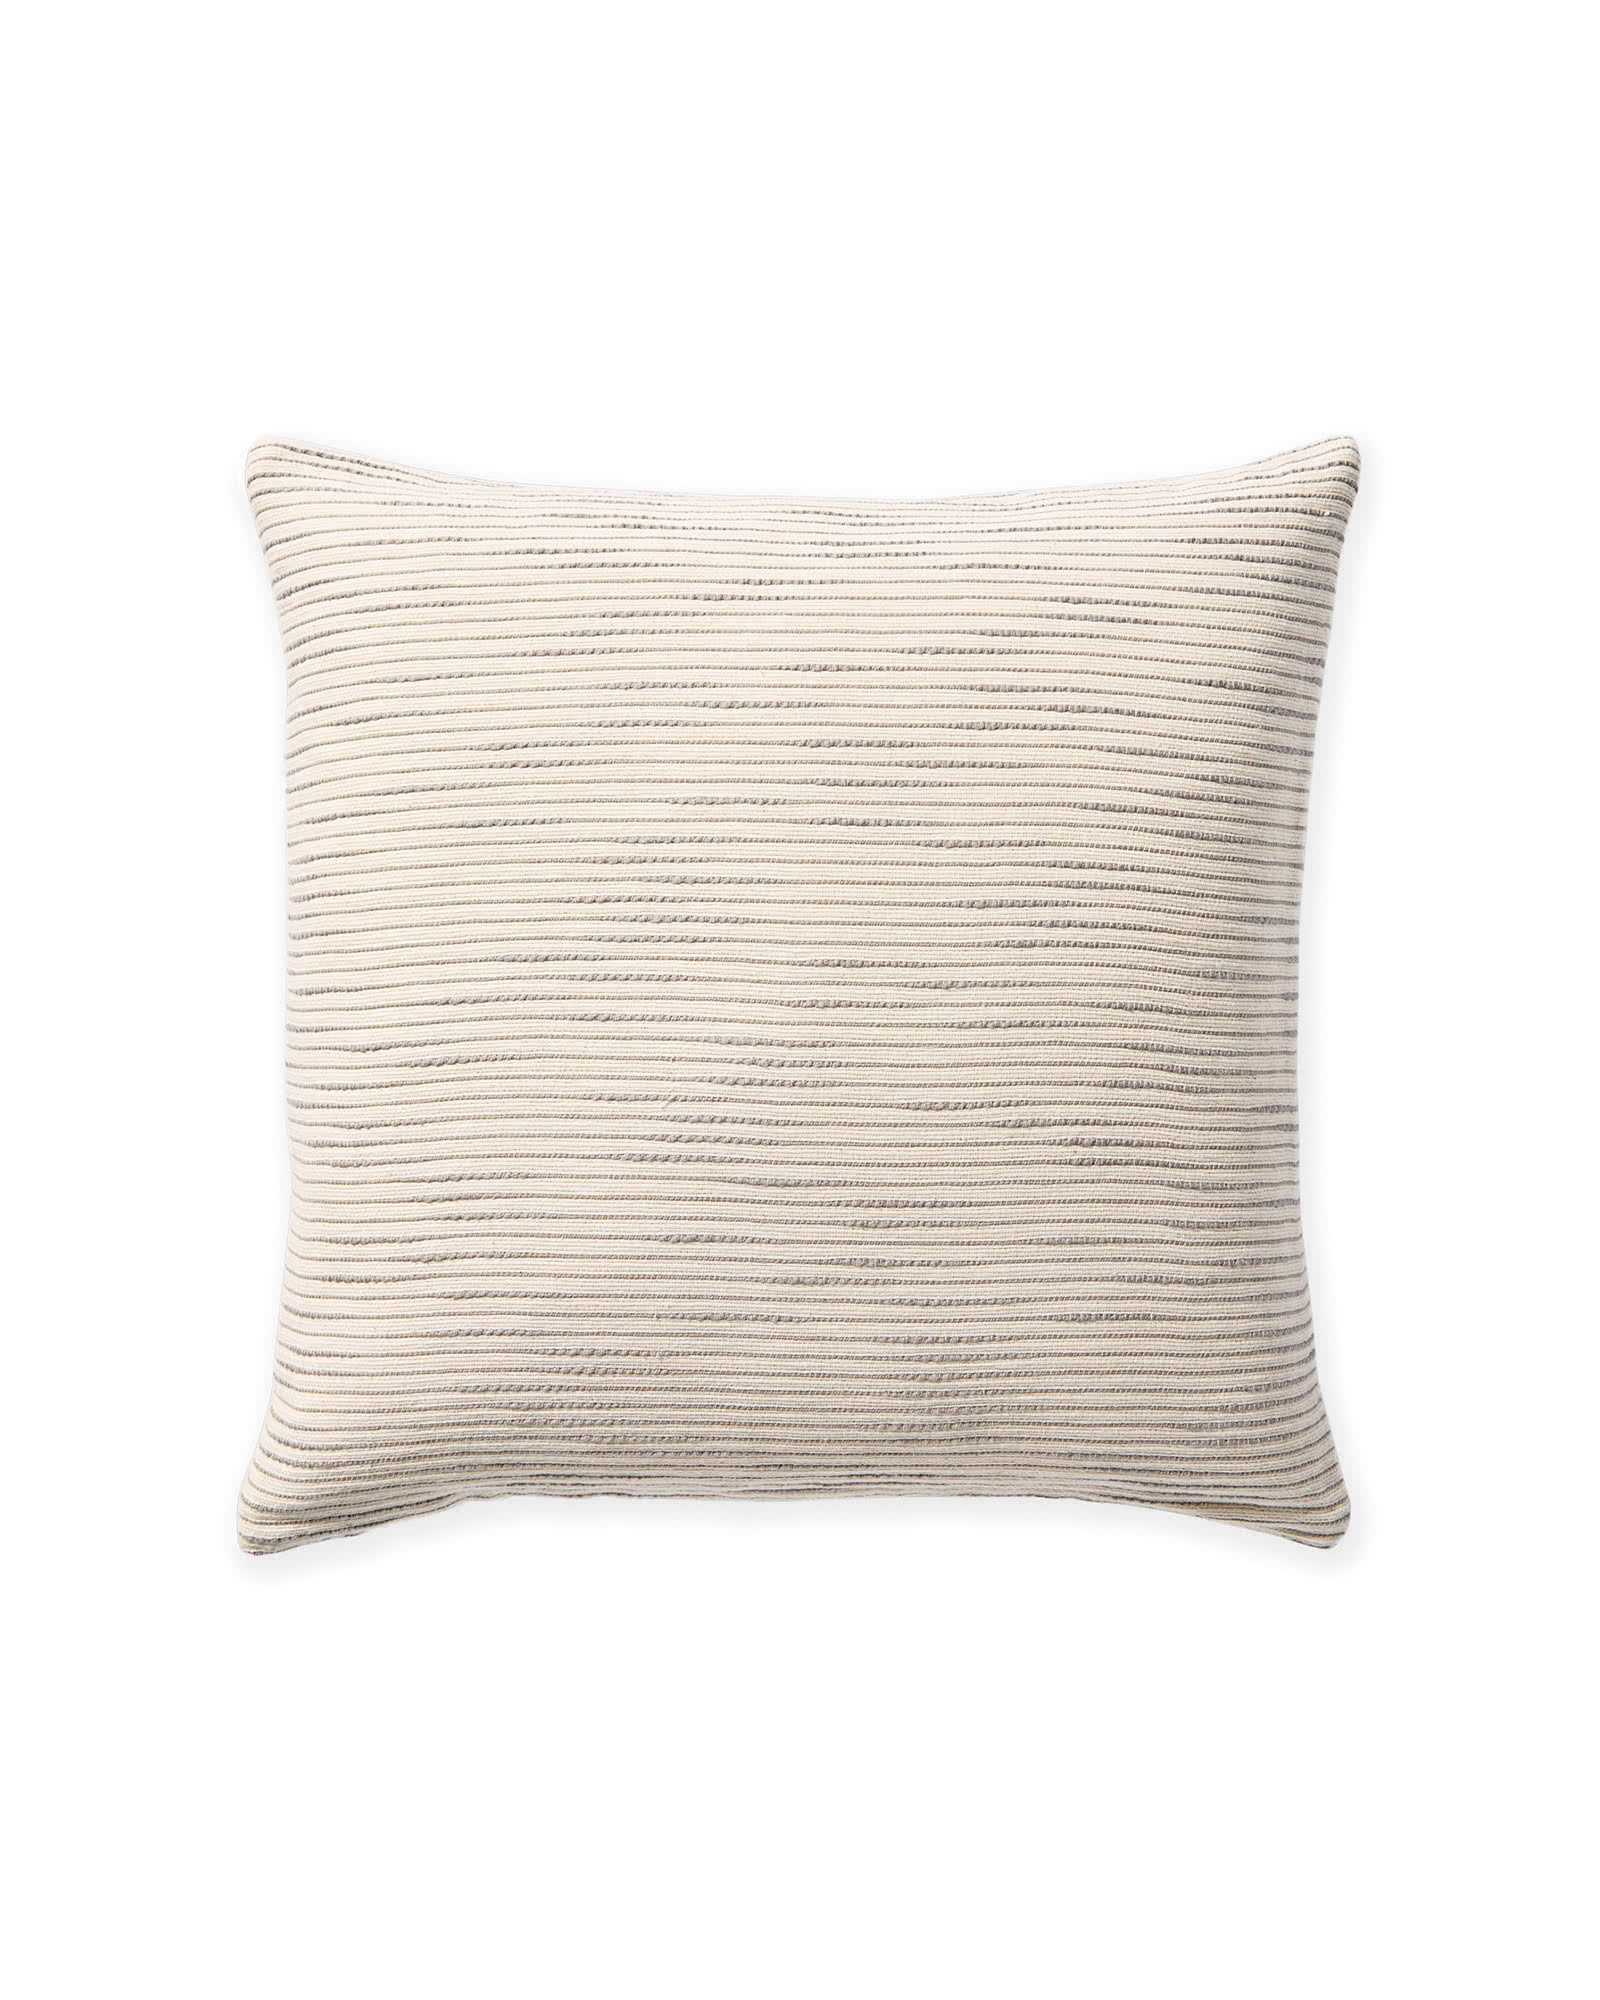 Buchanan Pillow Cover,